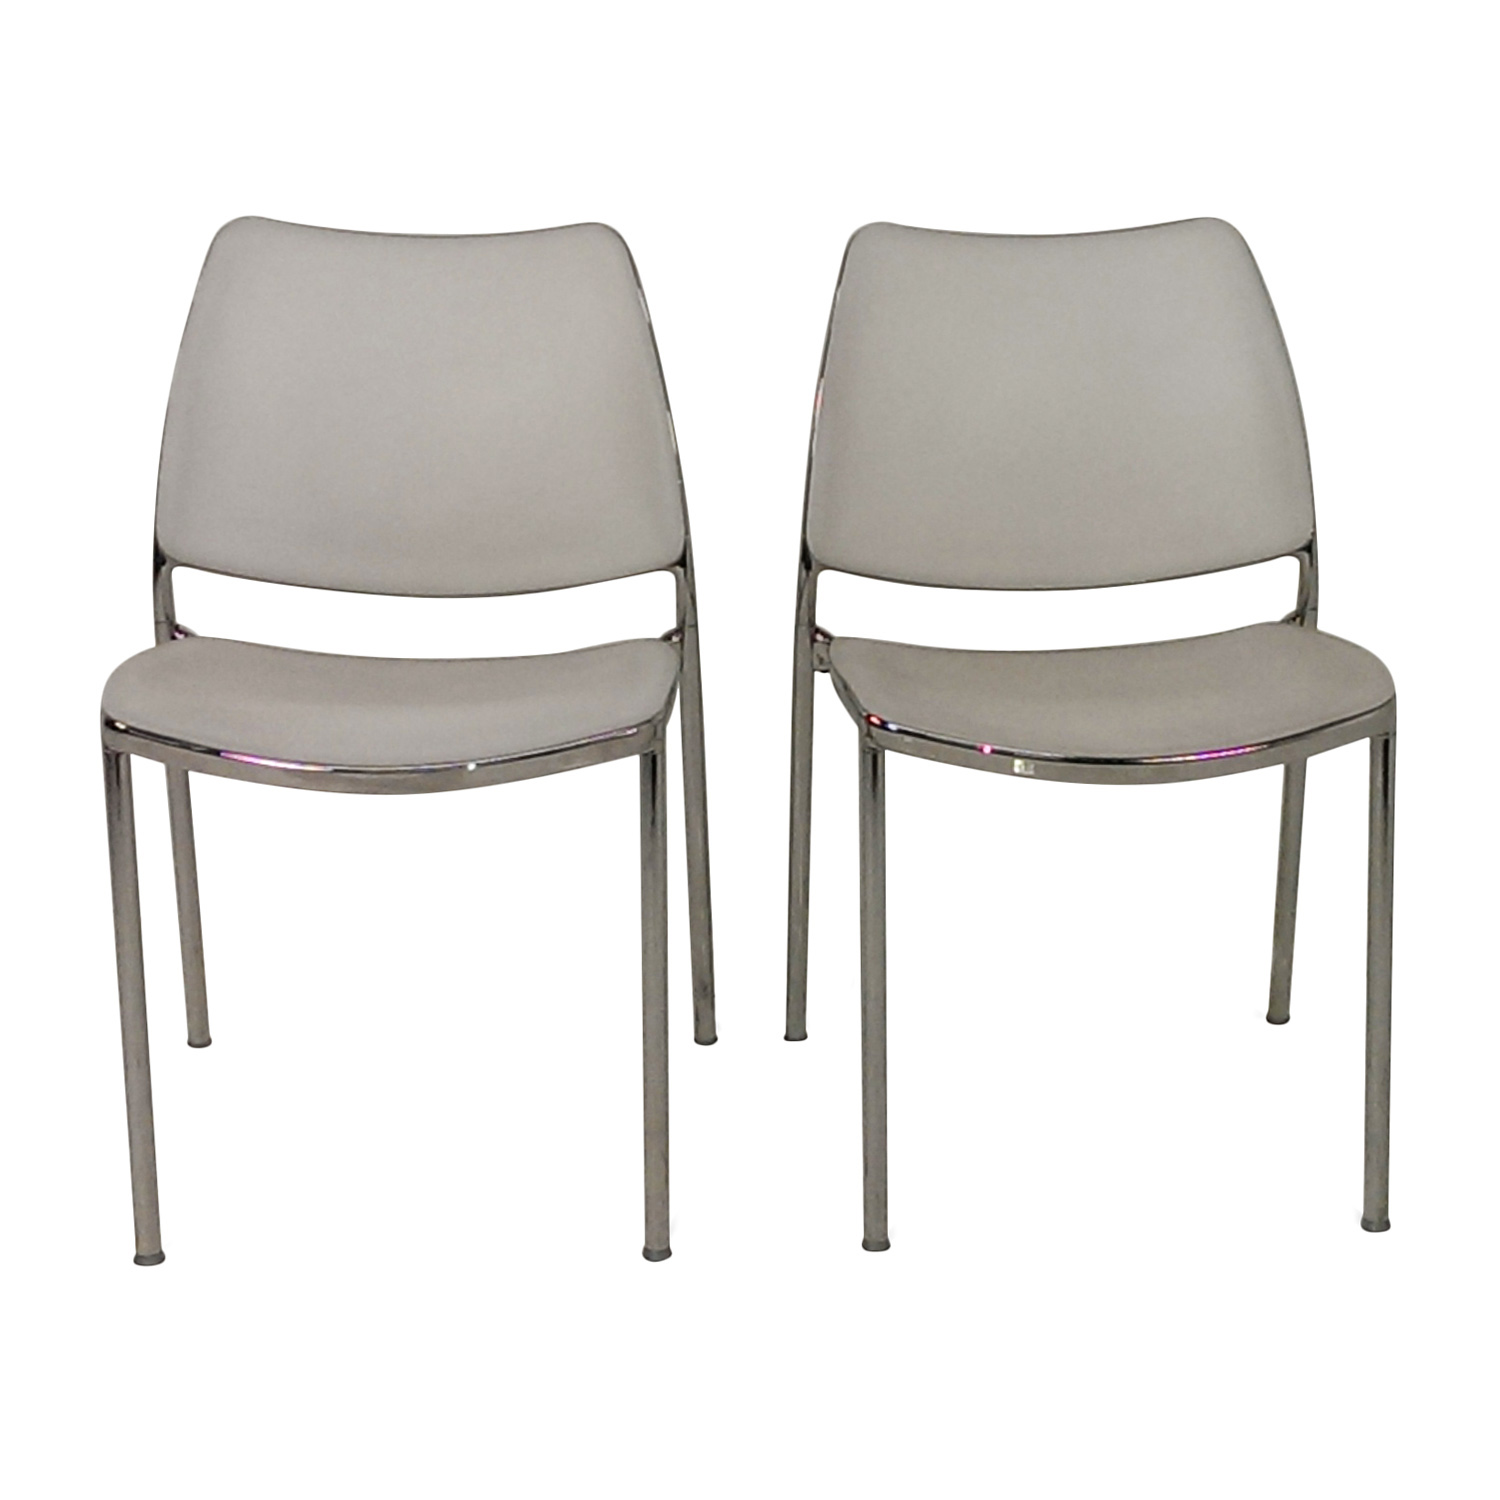 Pair of White Kitchen Chairs used